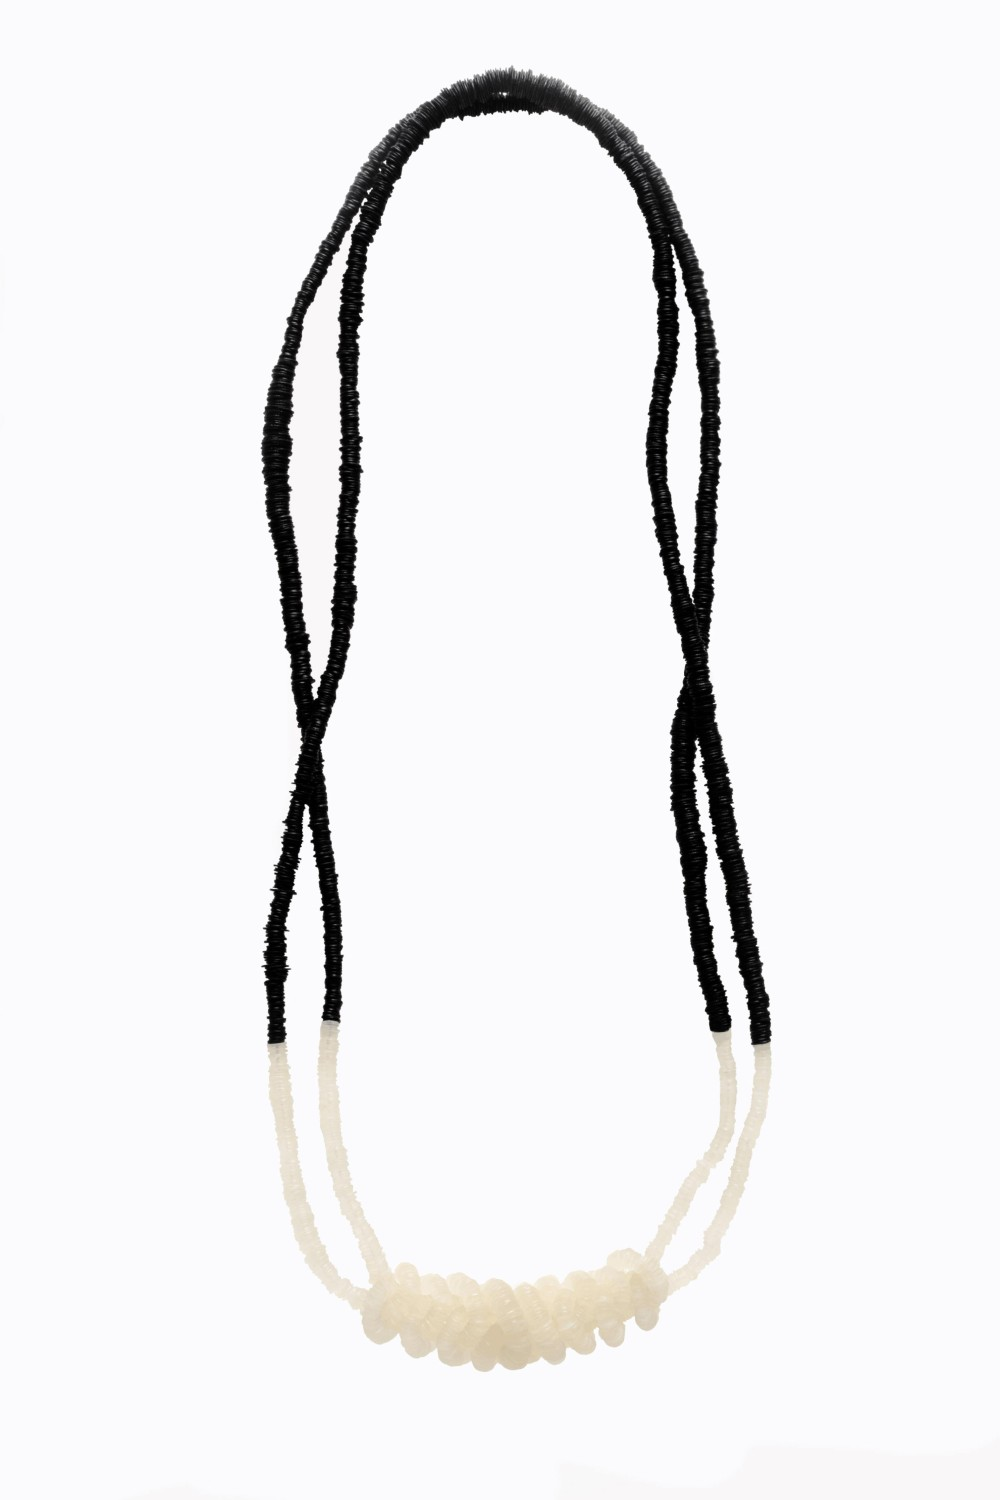 black and white plastic necklace